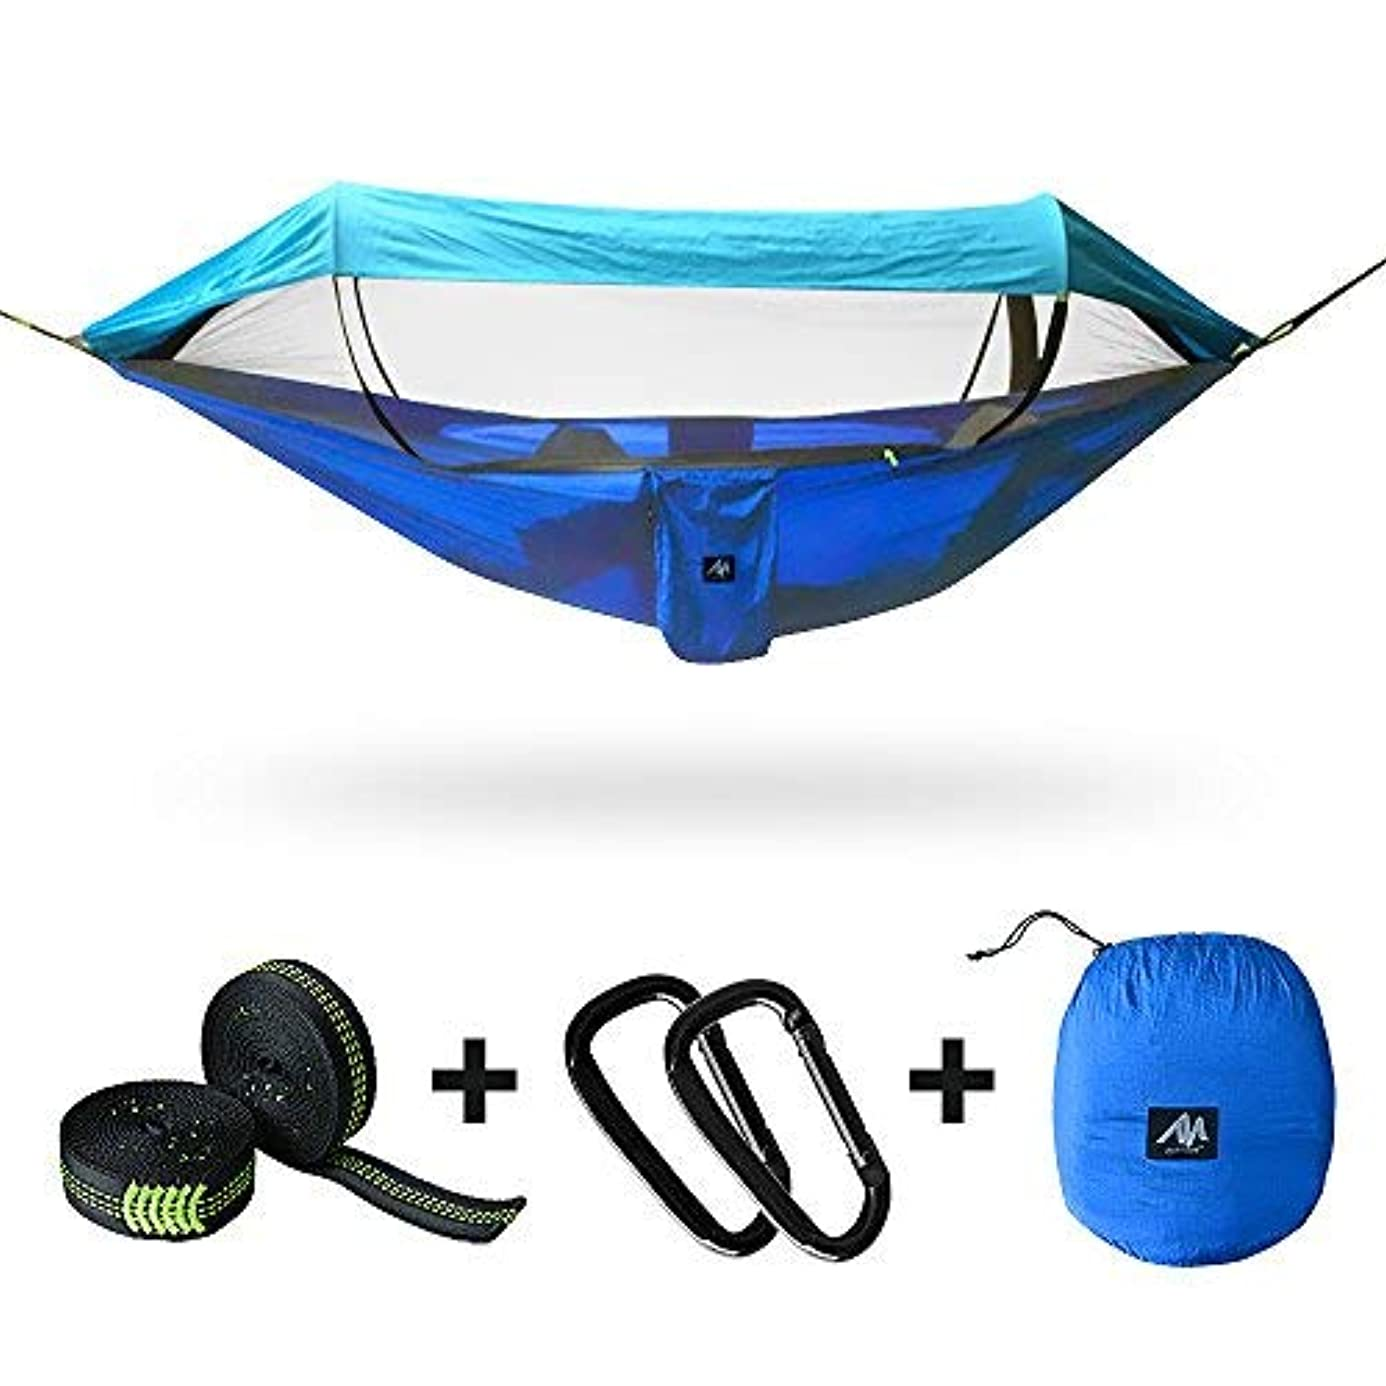 AYAMAYA [2 in 1 Camping Hammock with Mosquito Net & Sunshade Cloth & Tree Straps for 2/Double Person, Portable Parachute Nylon Lightweight Big Pop Up Swing Hammock with Bug/Insect Netting